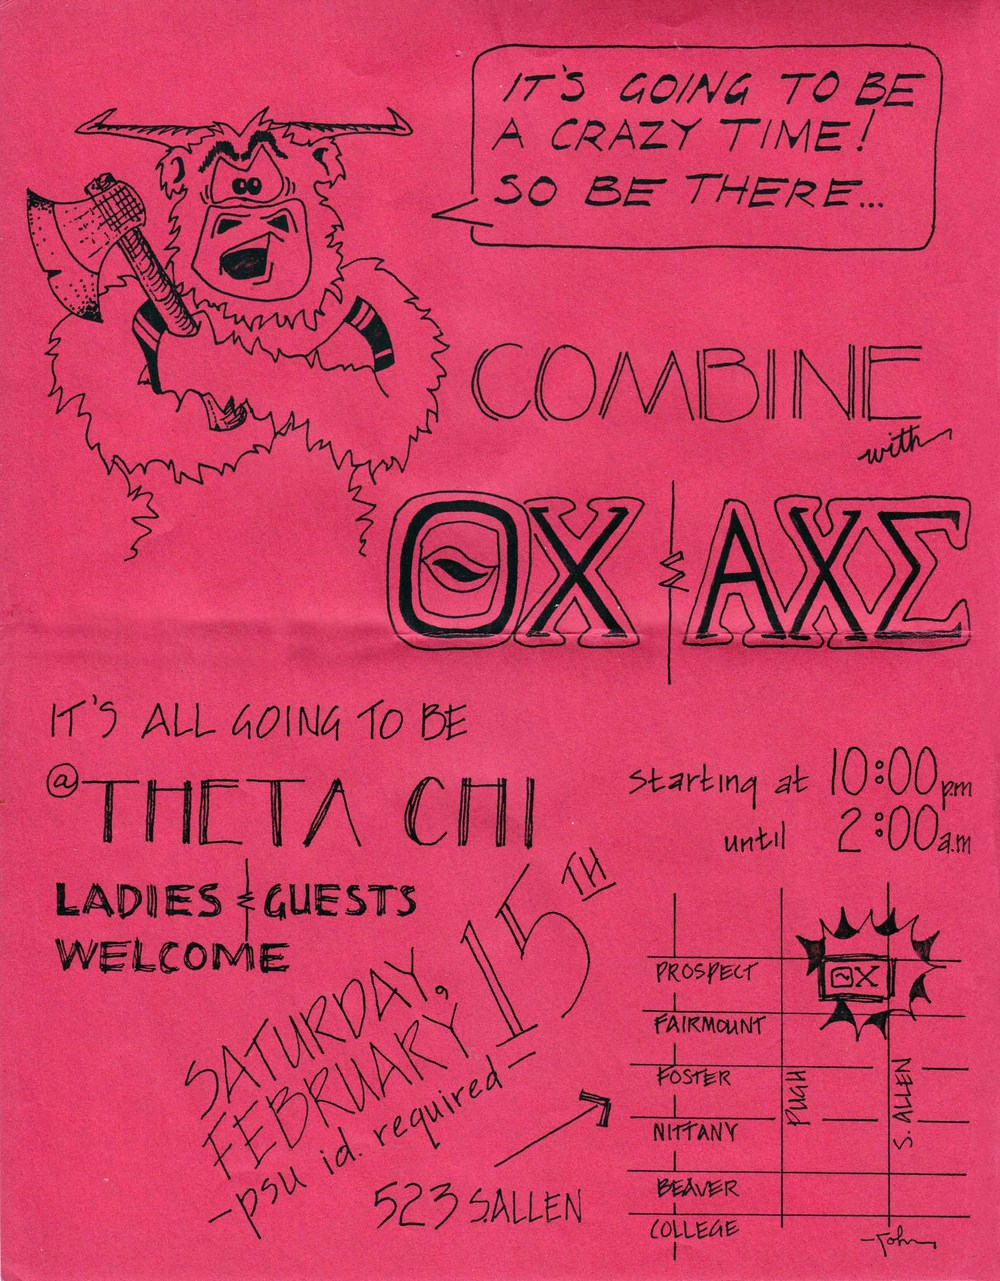 Combine Party Poster - Feb. 15, 1986